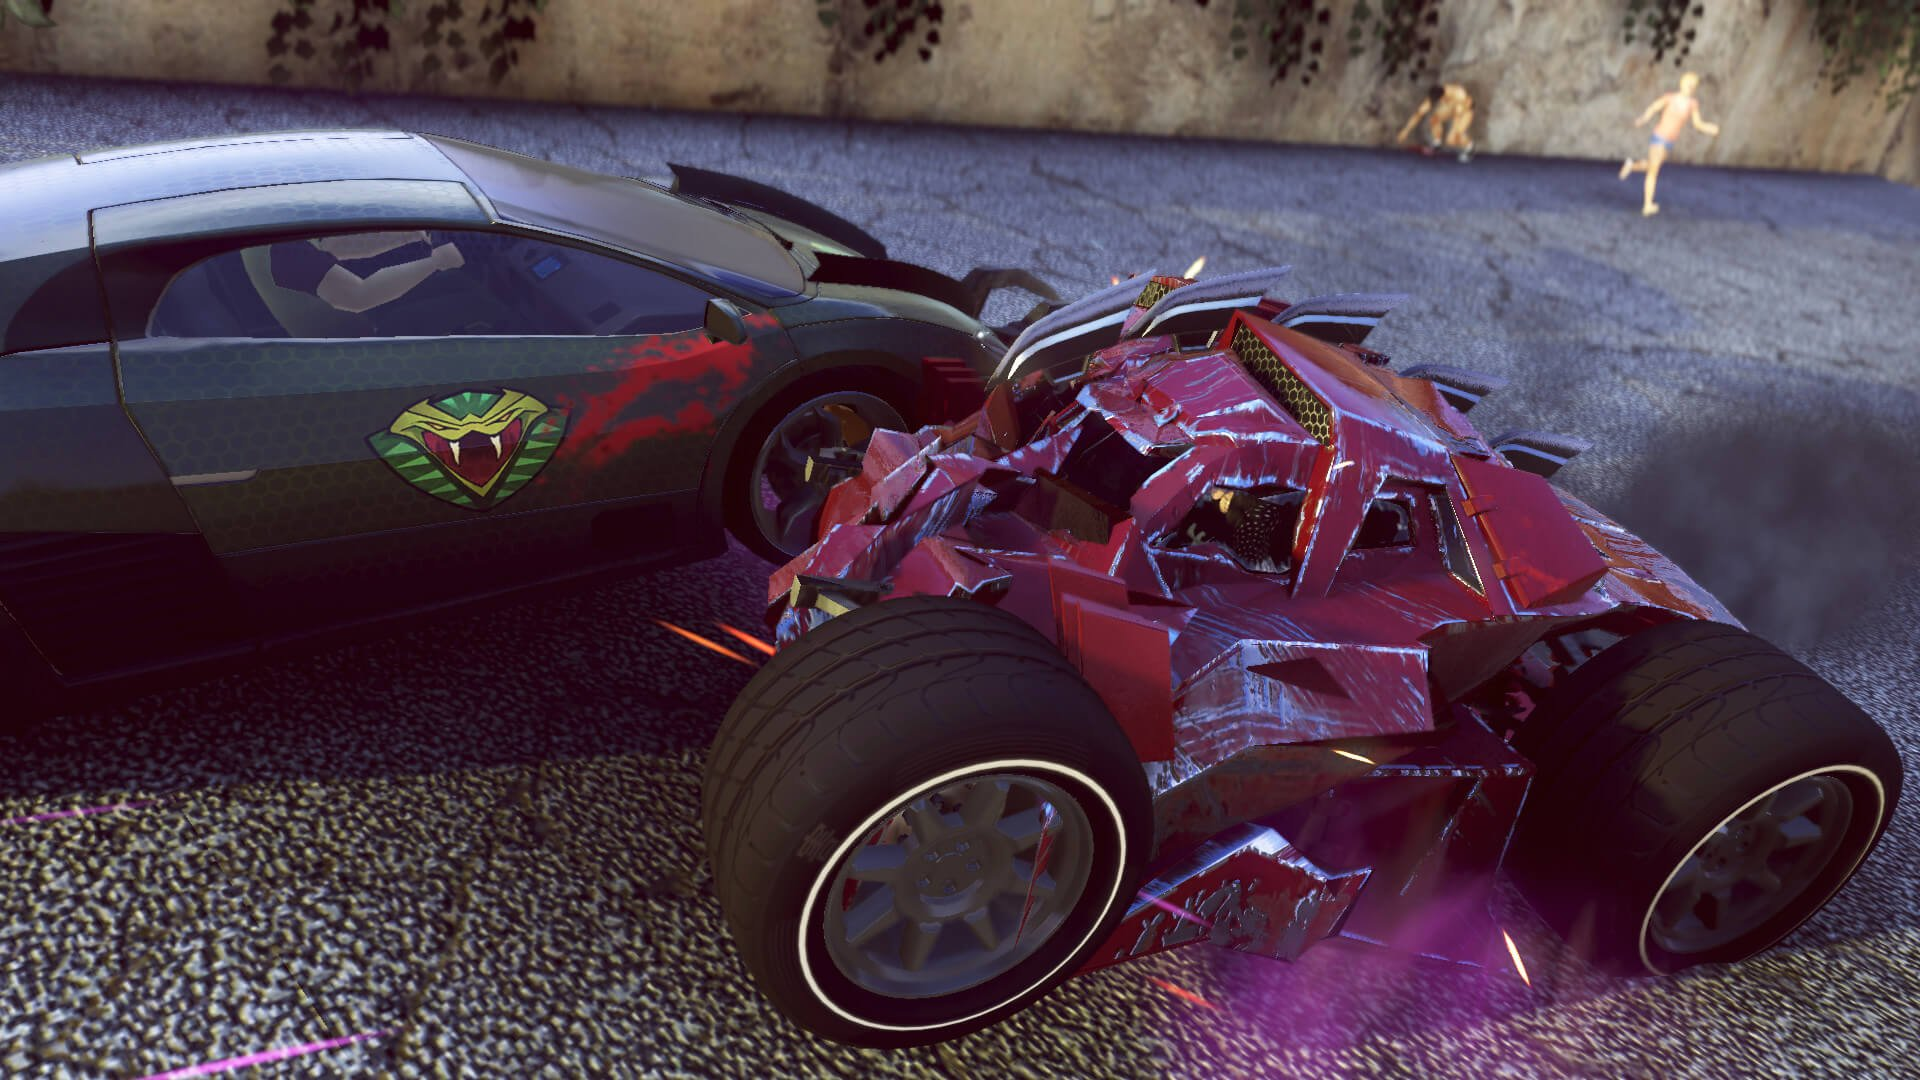 Carmageddon: Max Damage